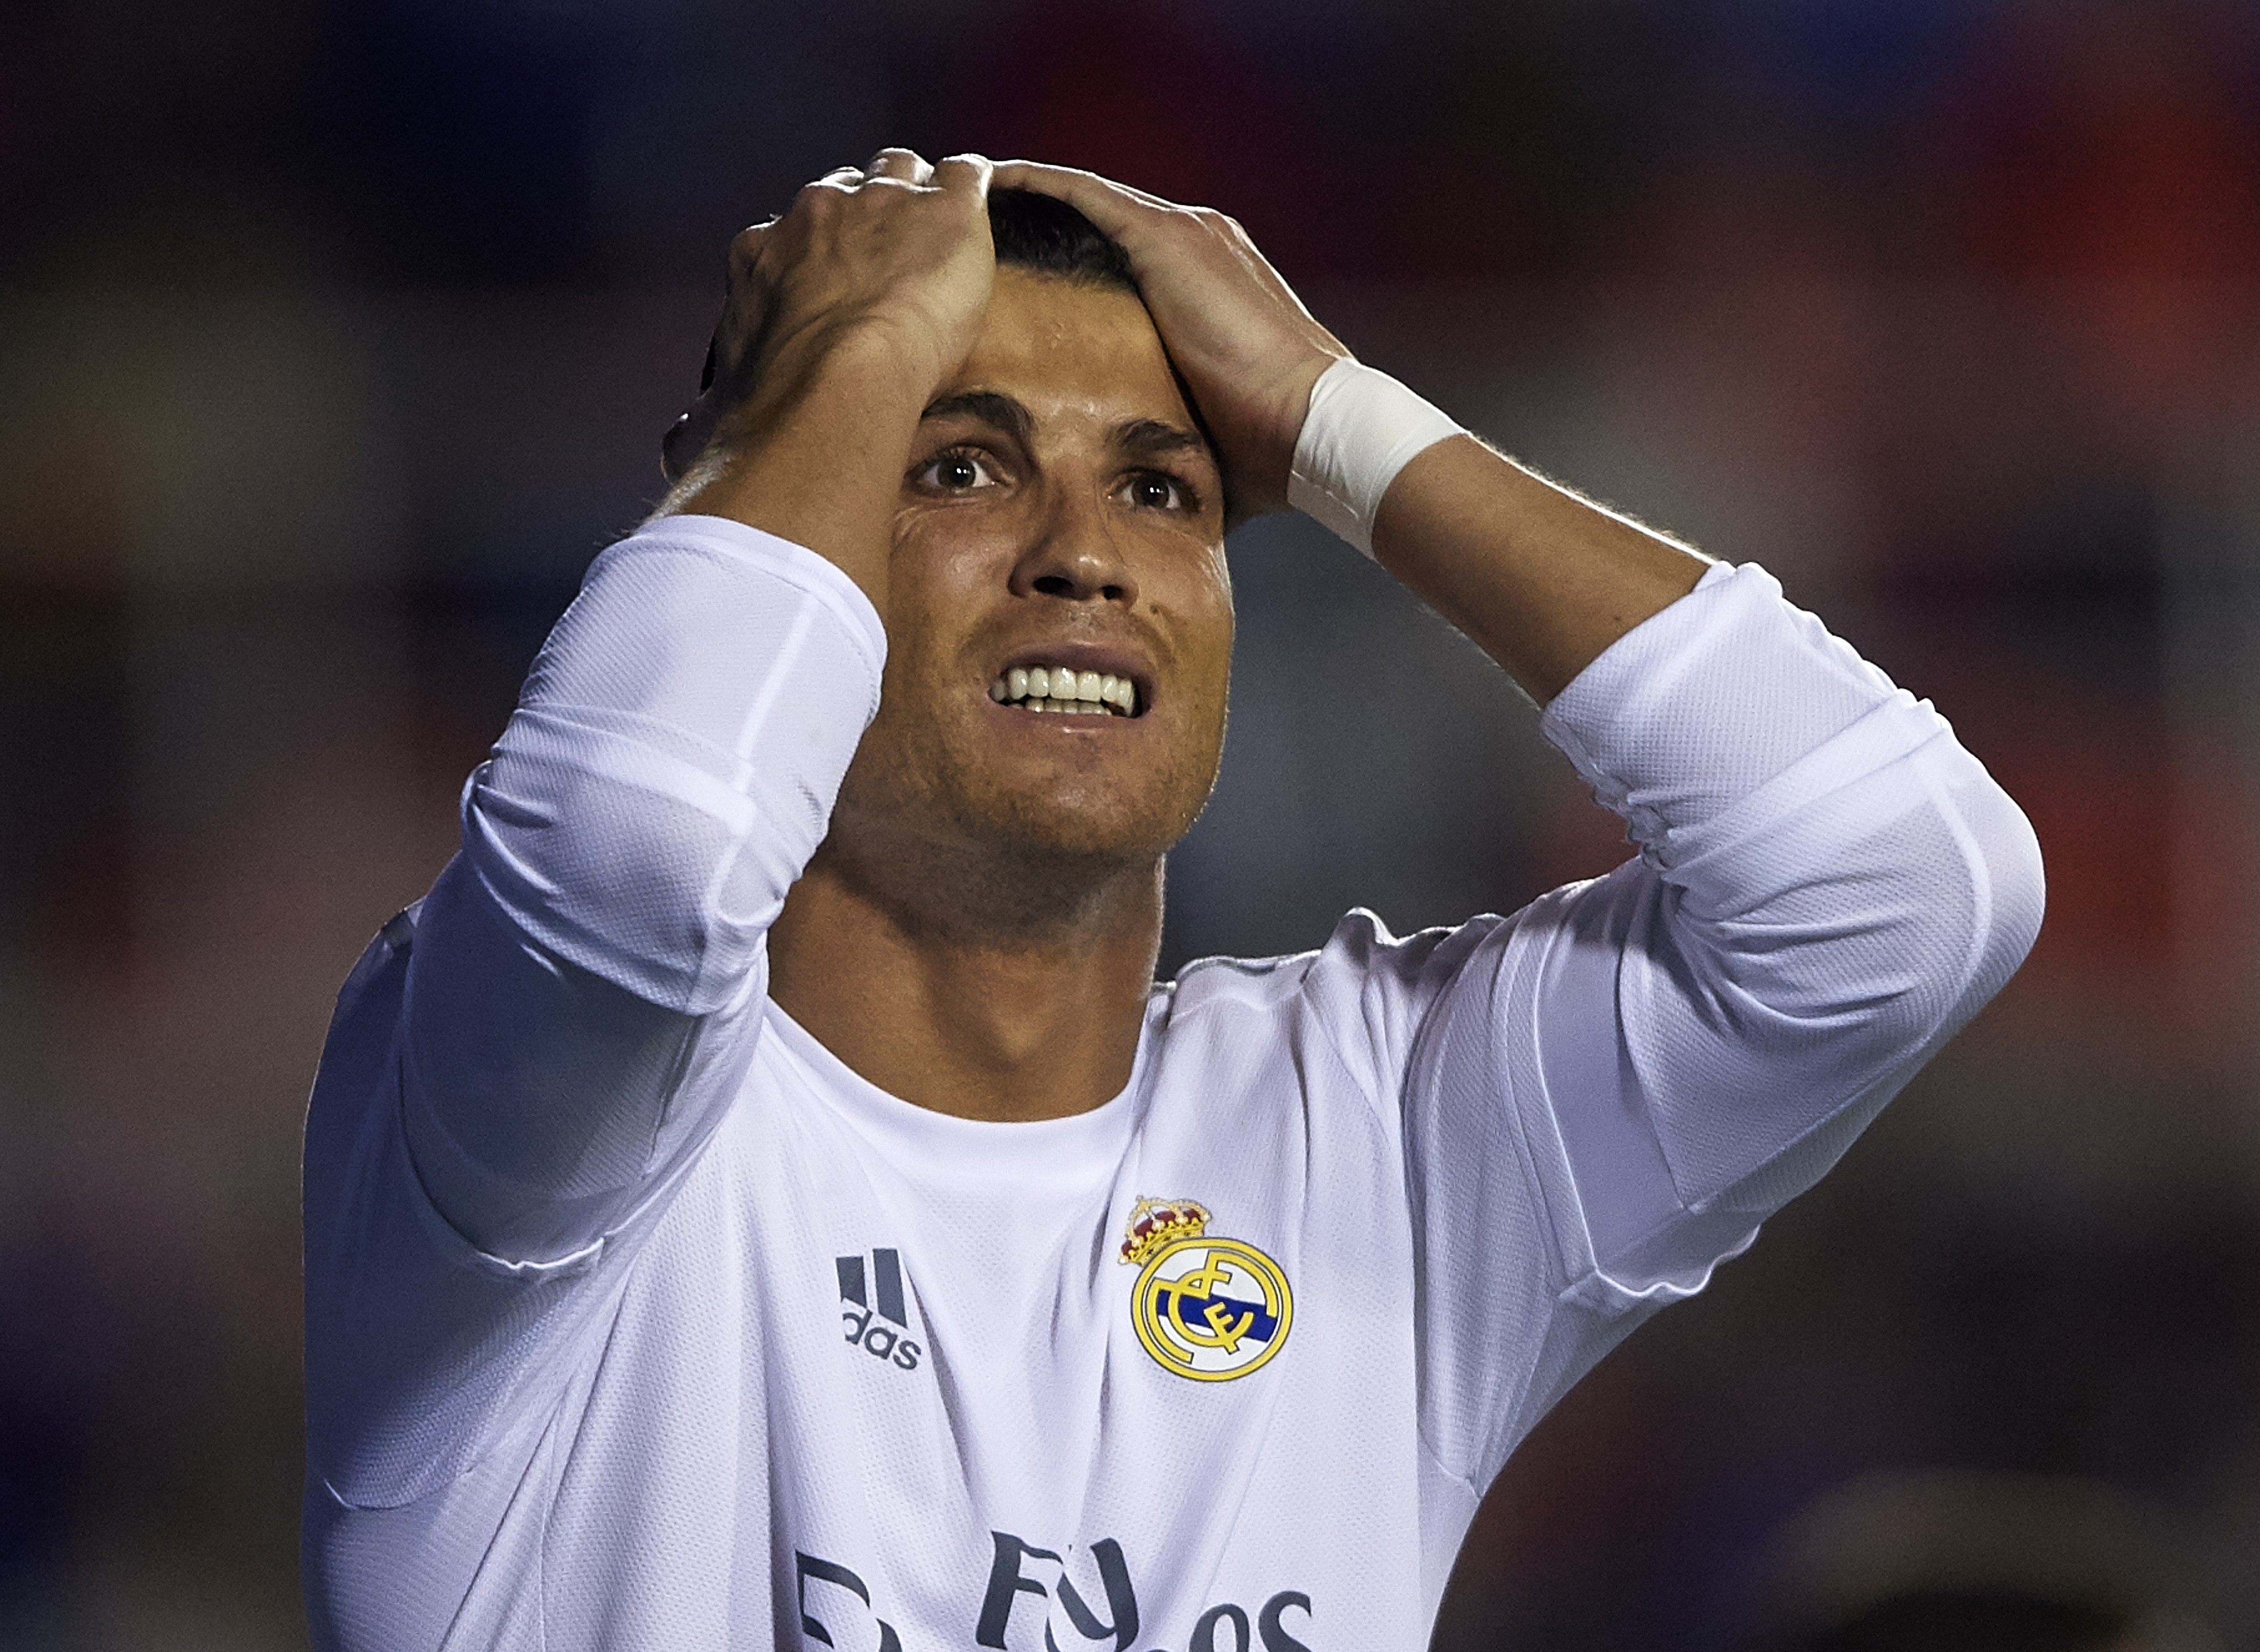 Aging Cristiano Ronaldo must adjust his game to last long at Real Madrid -warns Mendieta